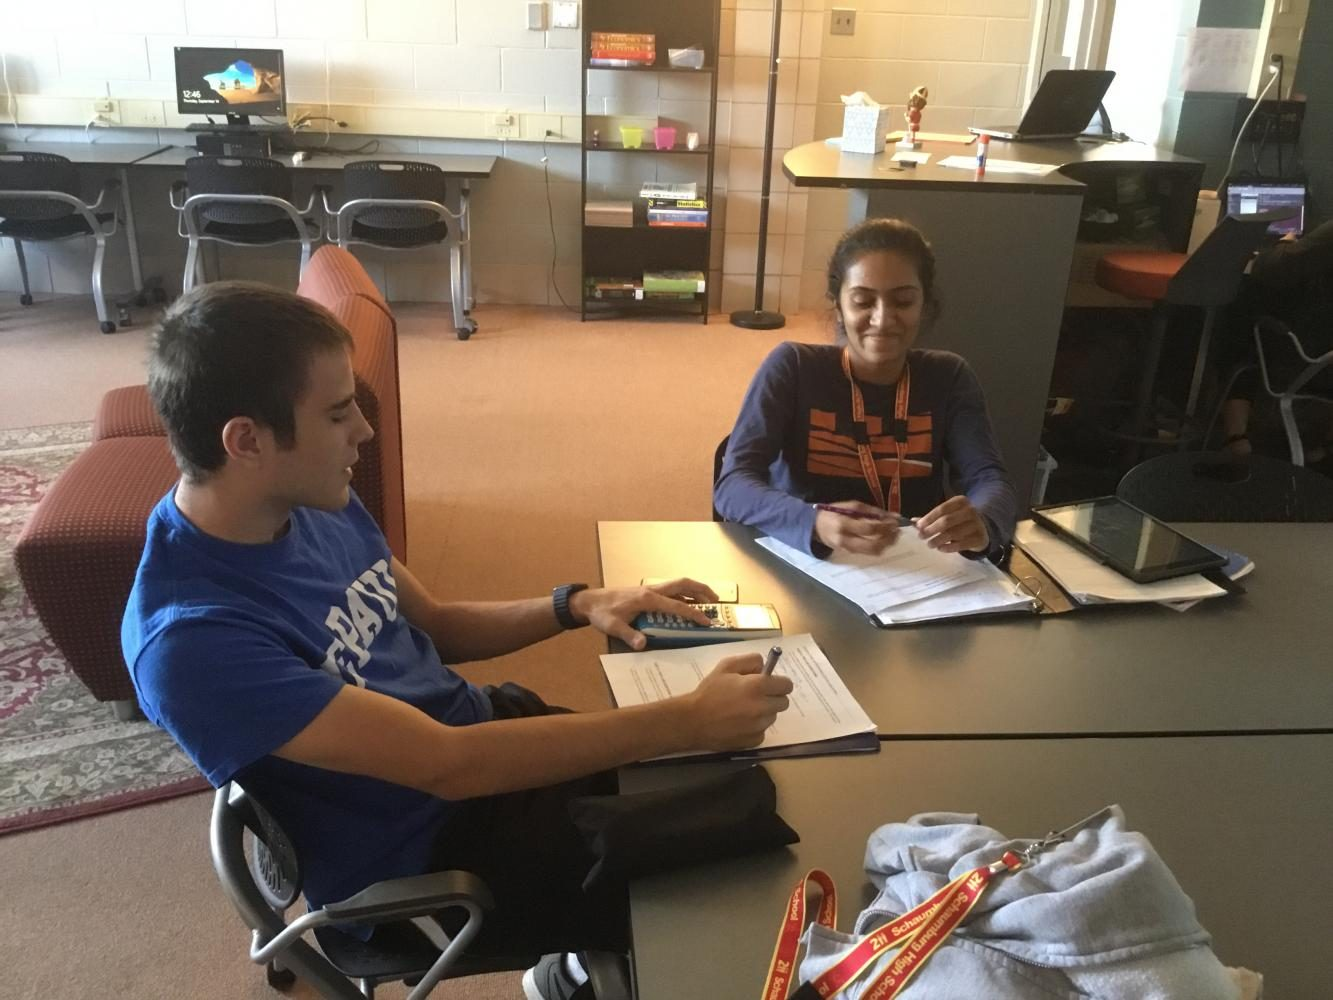 Senior Daniel Owen and Uma Pradeepan study together in the AP Resource Room, which is a new addition to the SHS media center.